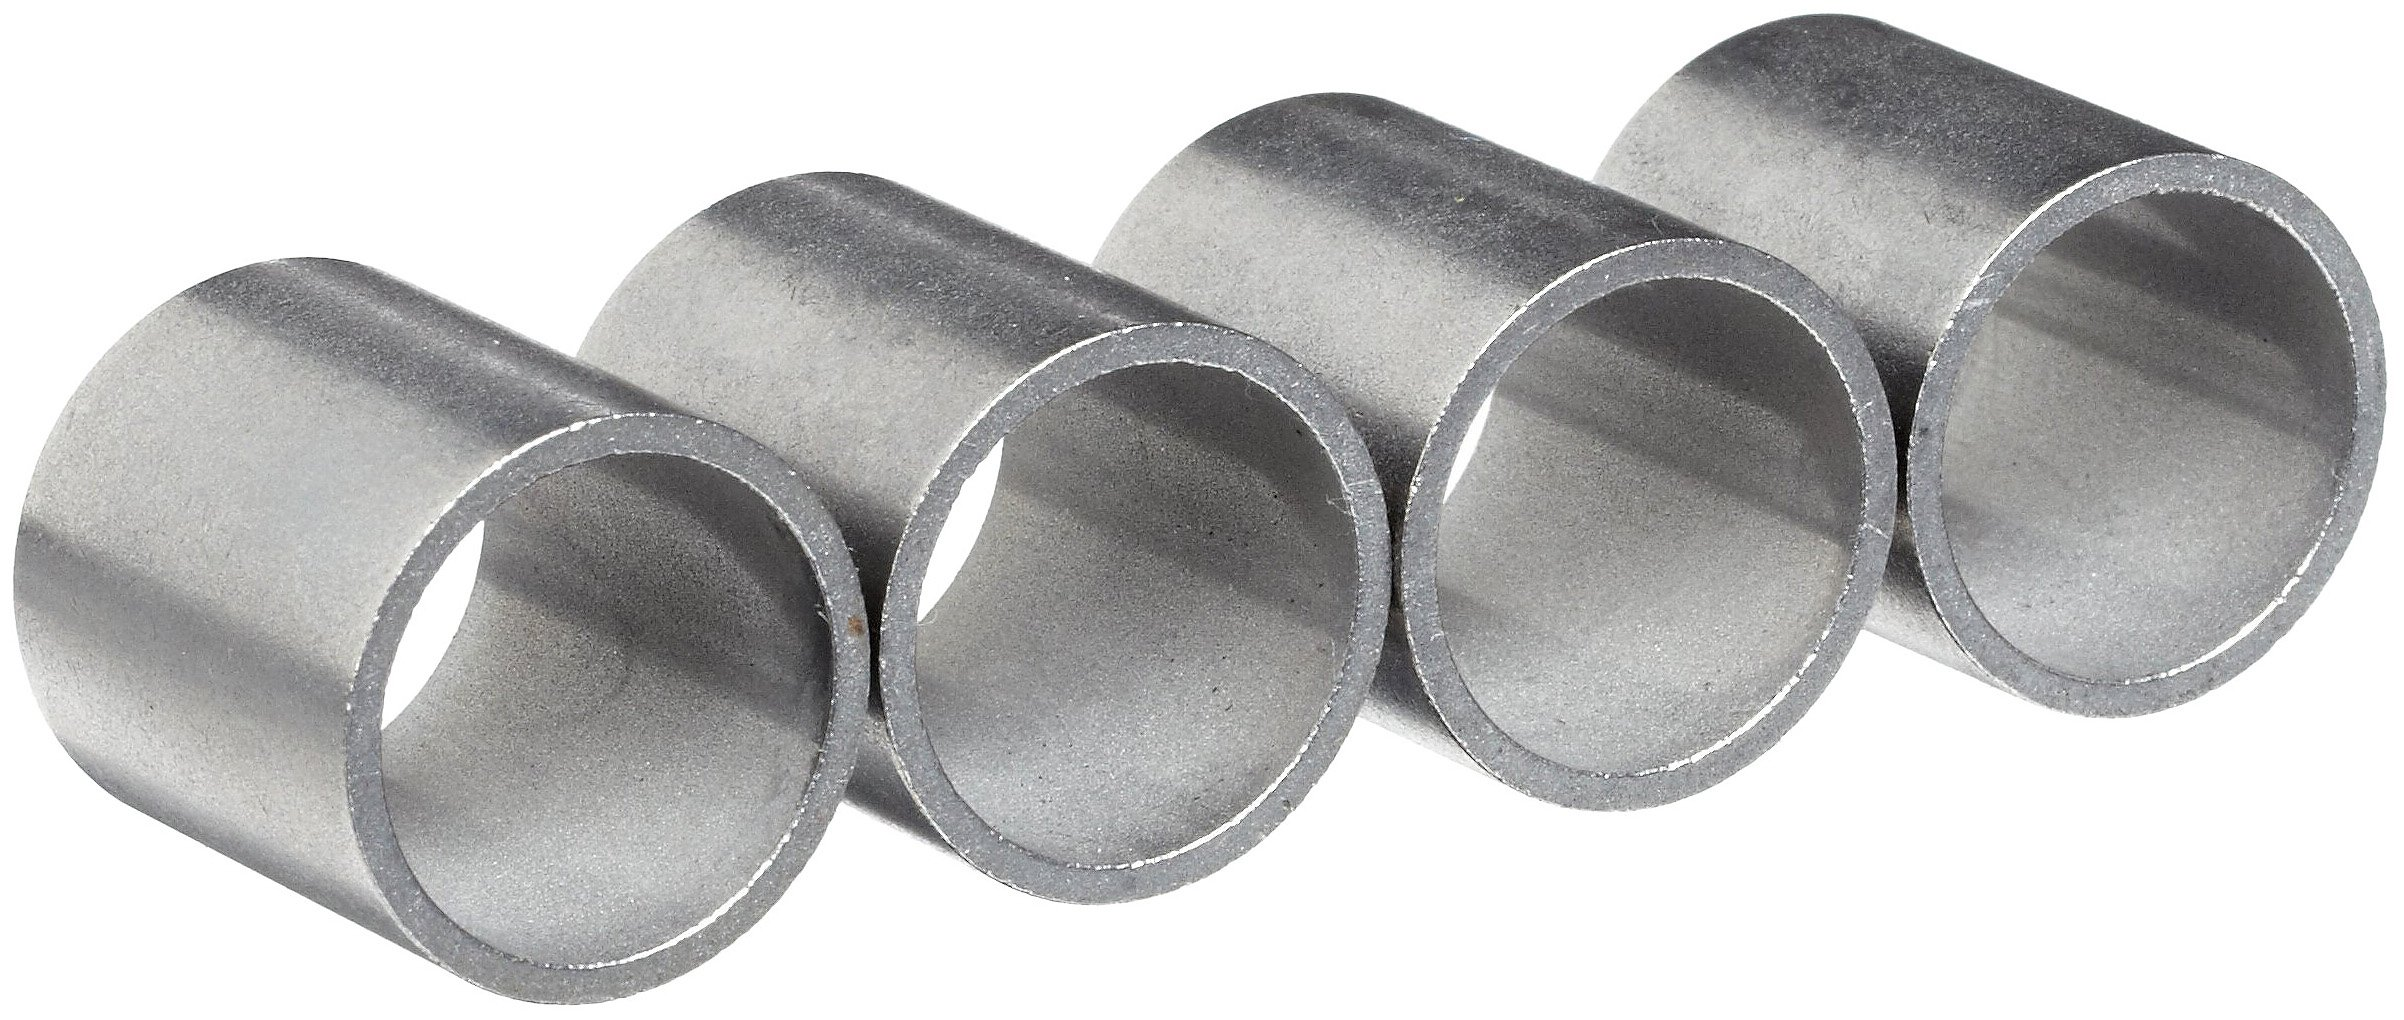 BSM Pump 713-9003-107-1 Renewable Bearing Kit With Numbers 3, 3S, 4 And 13